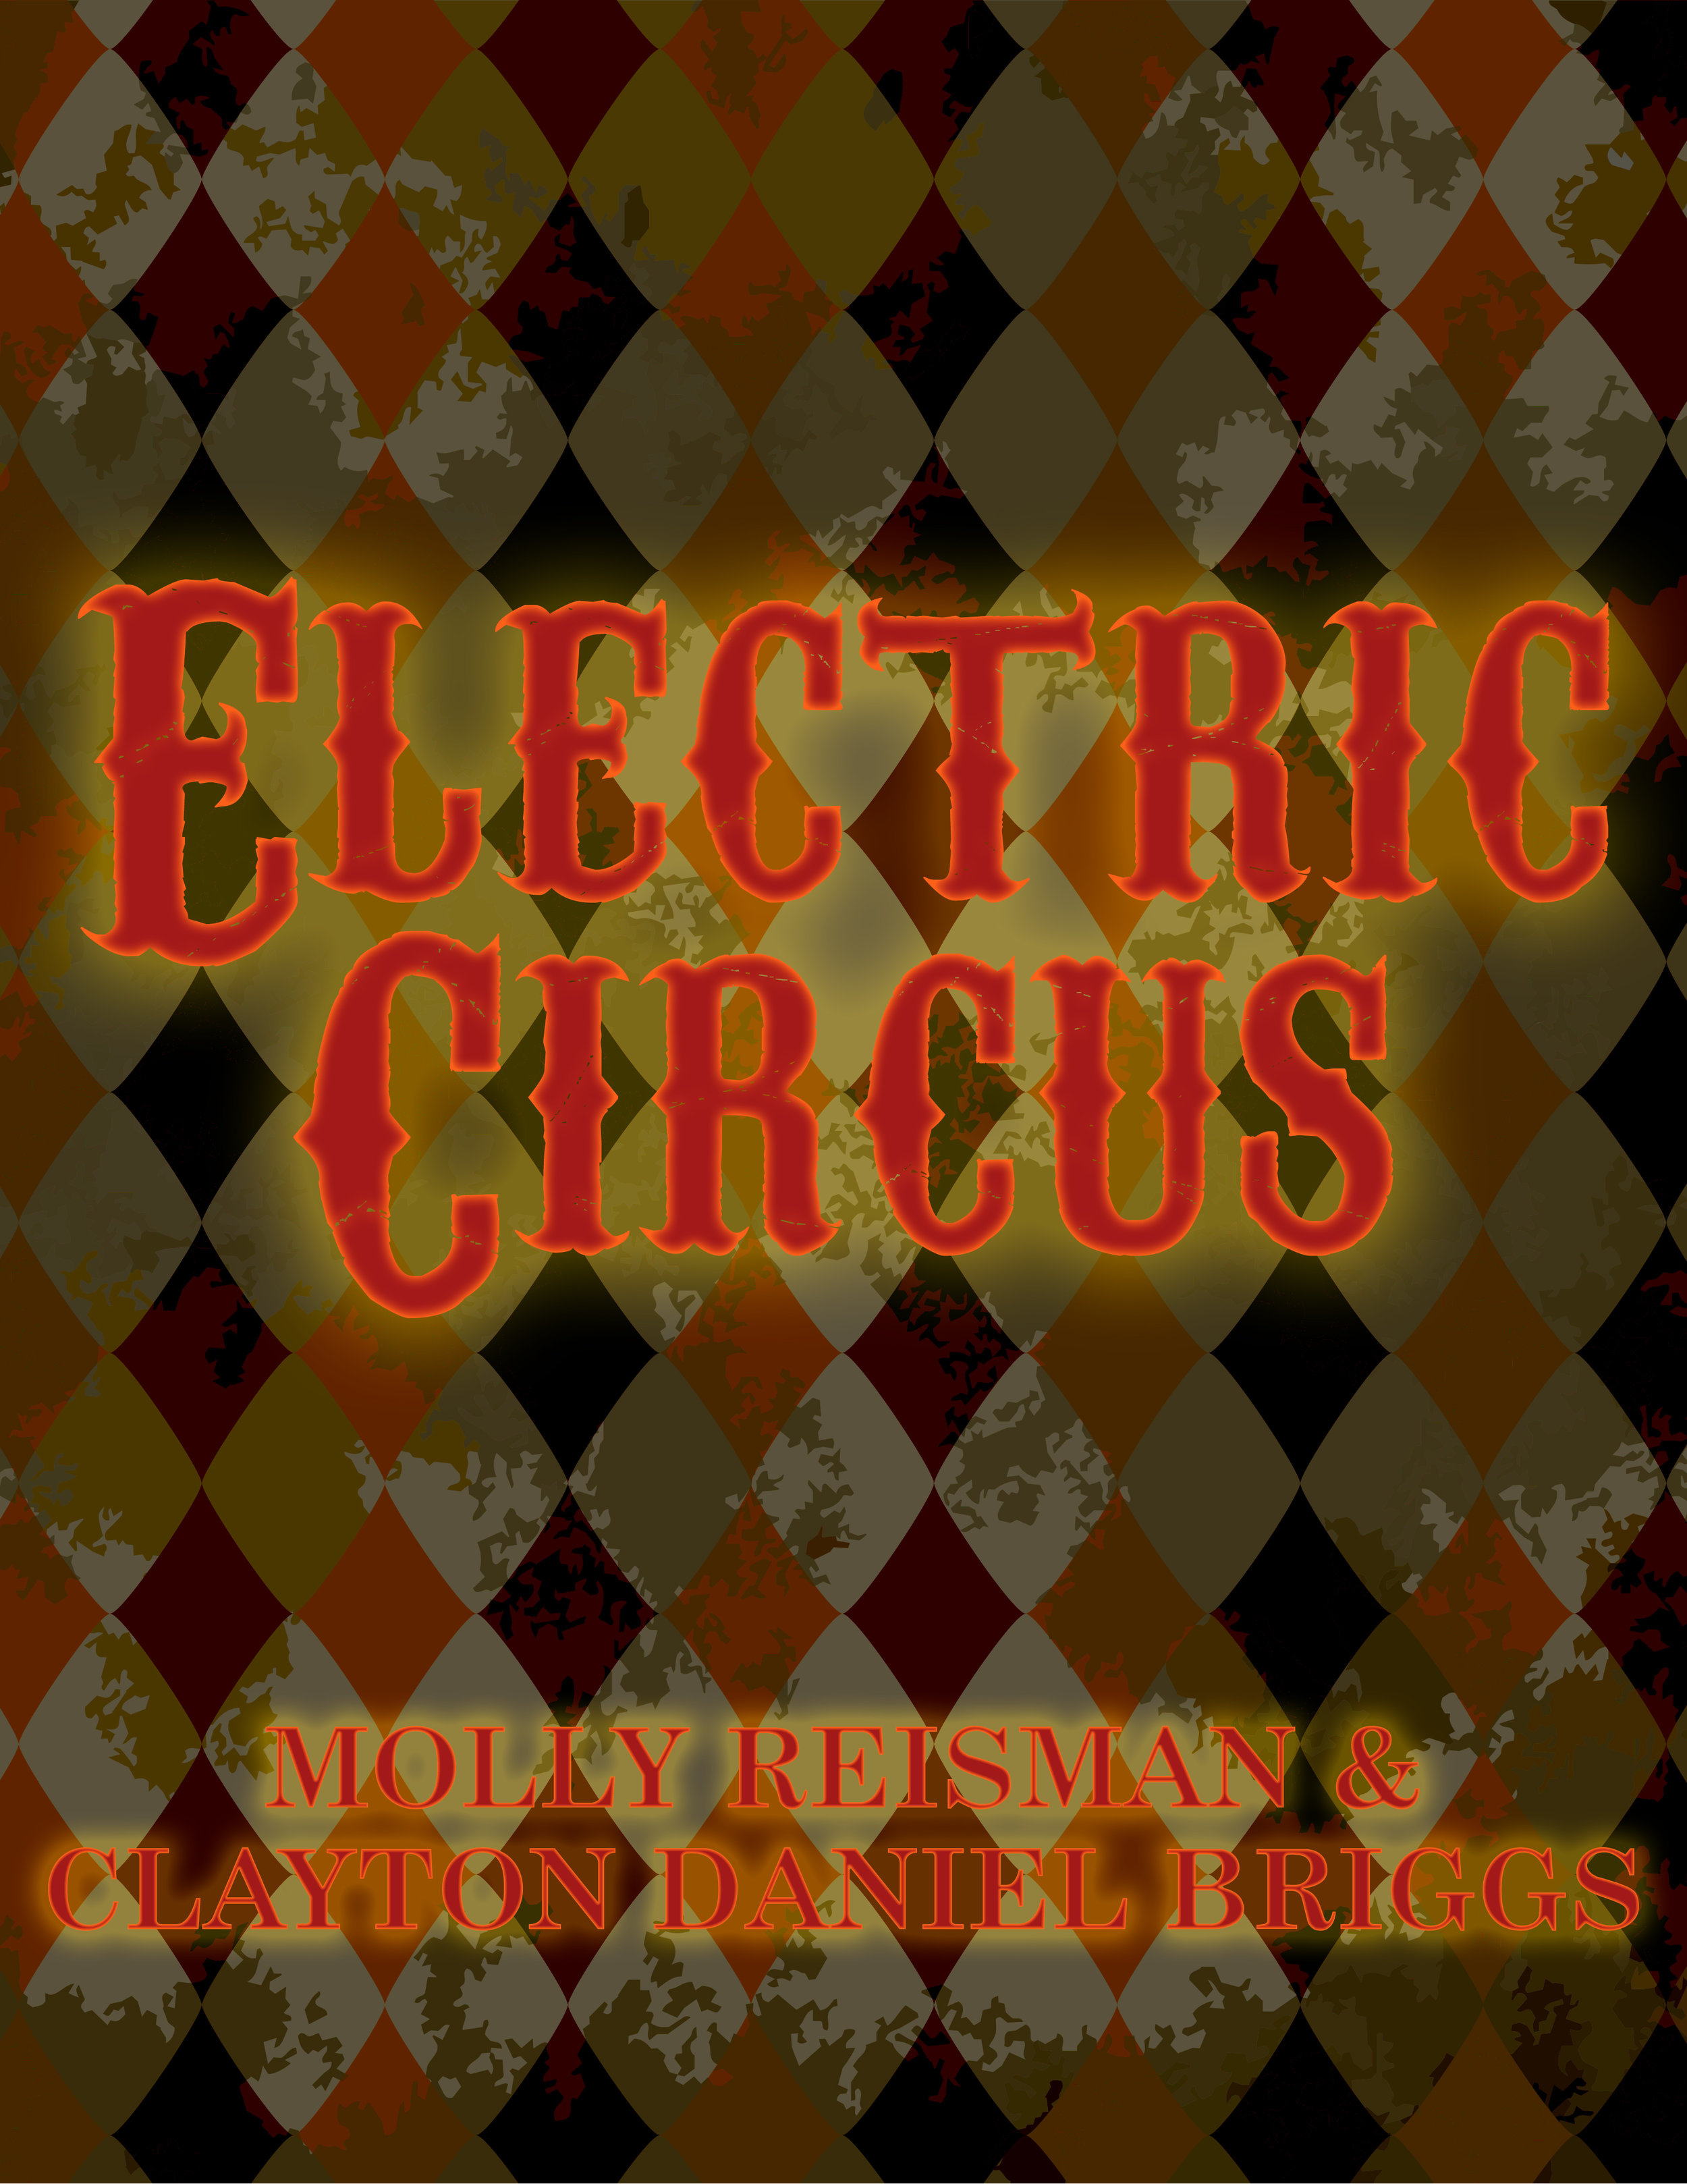 Electric Circus Poster Tall.jpg